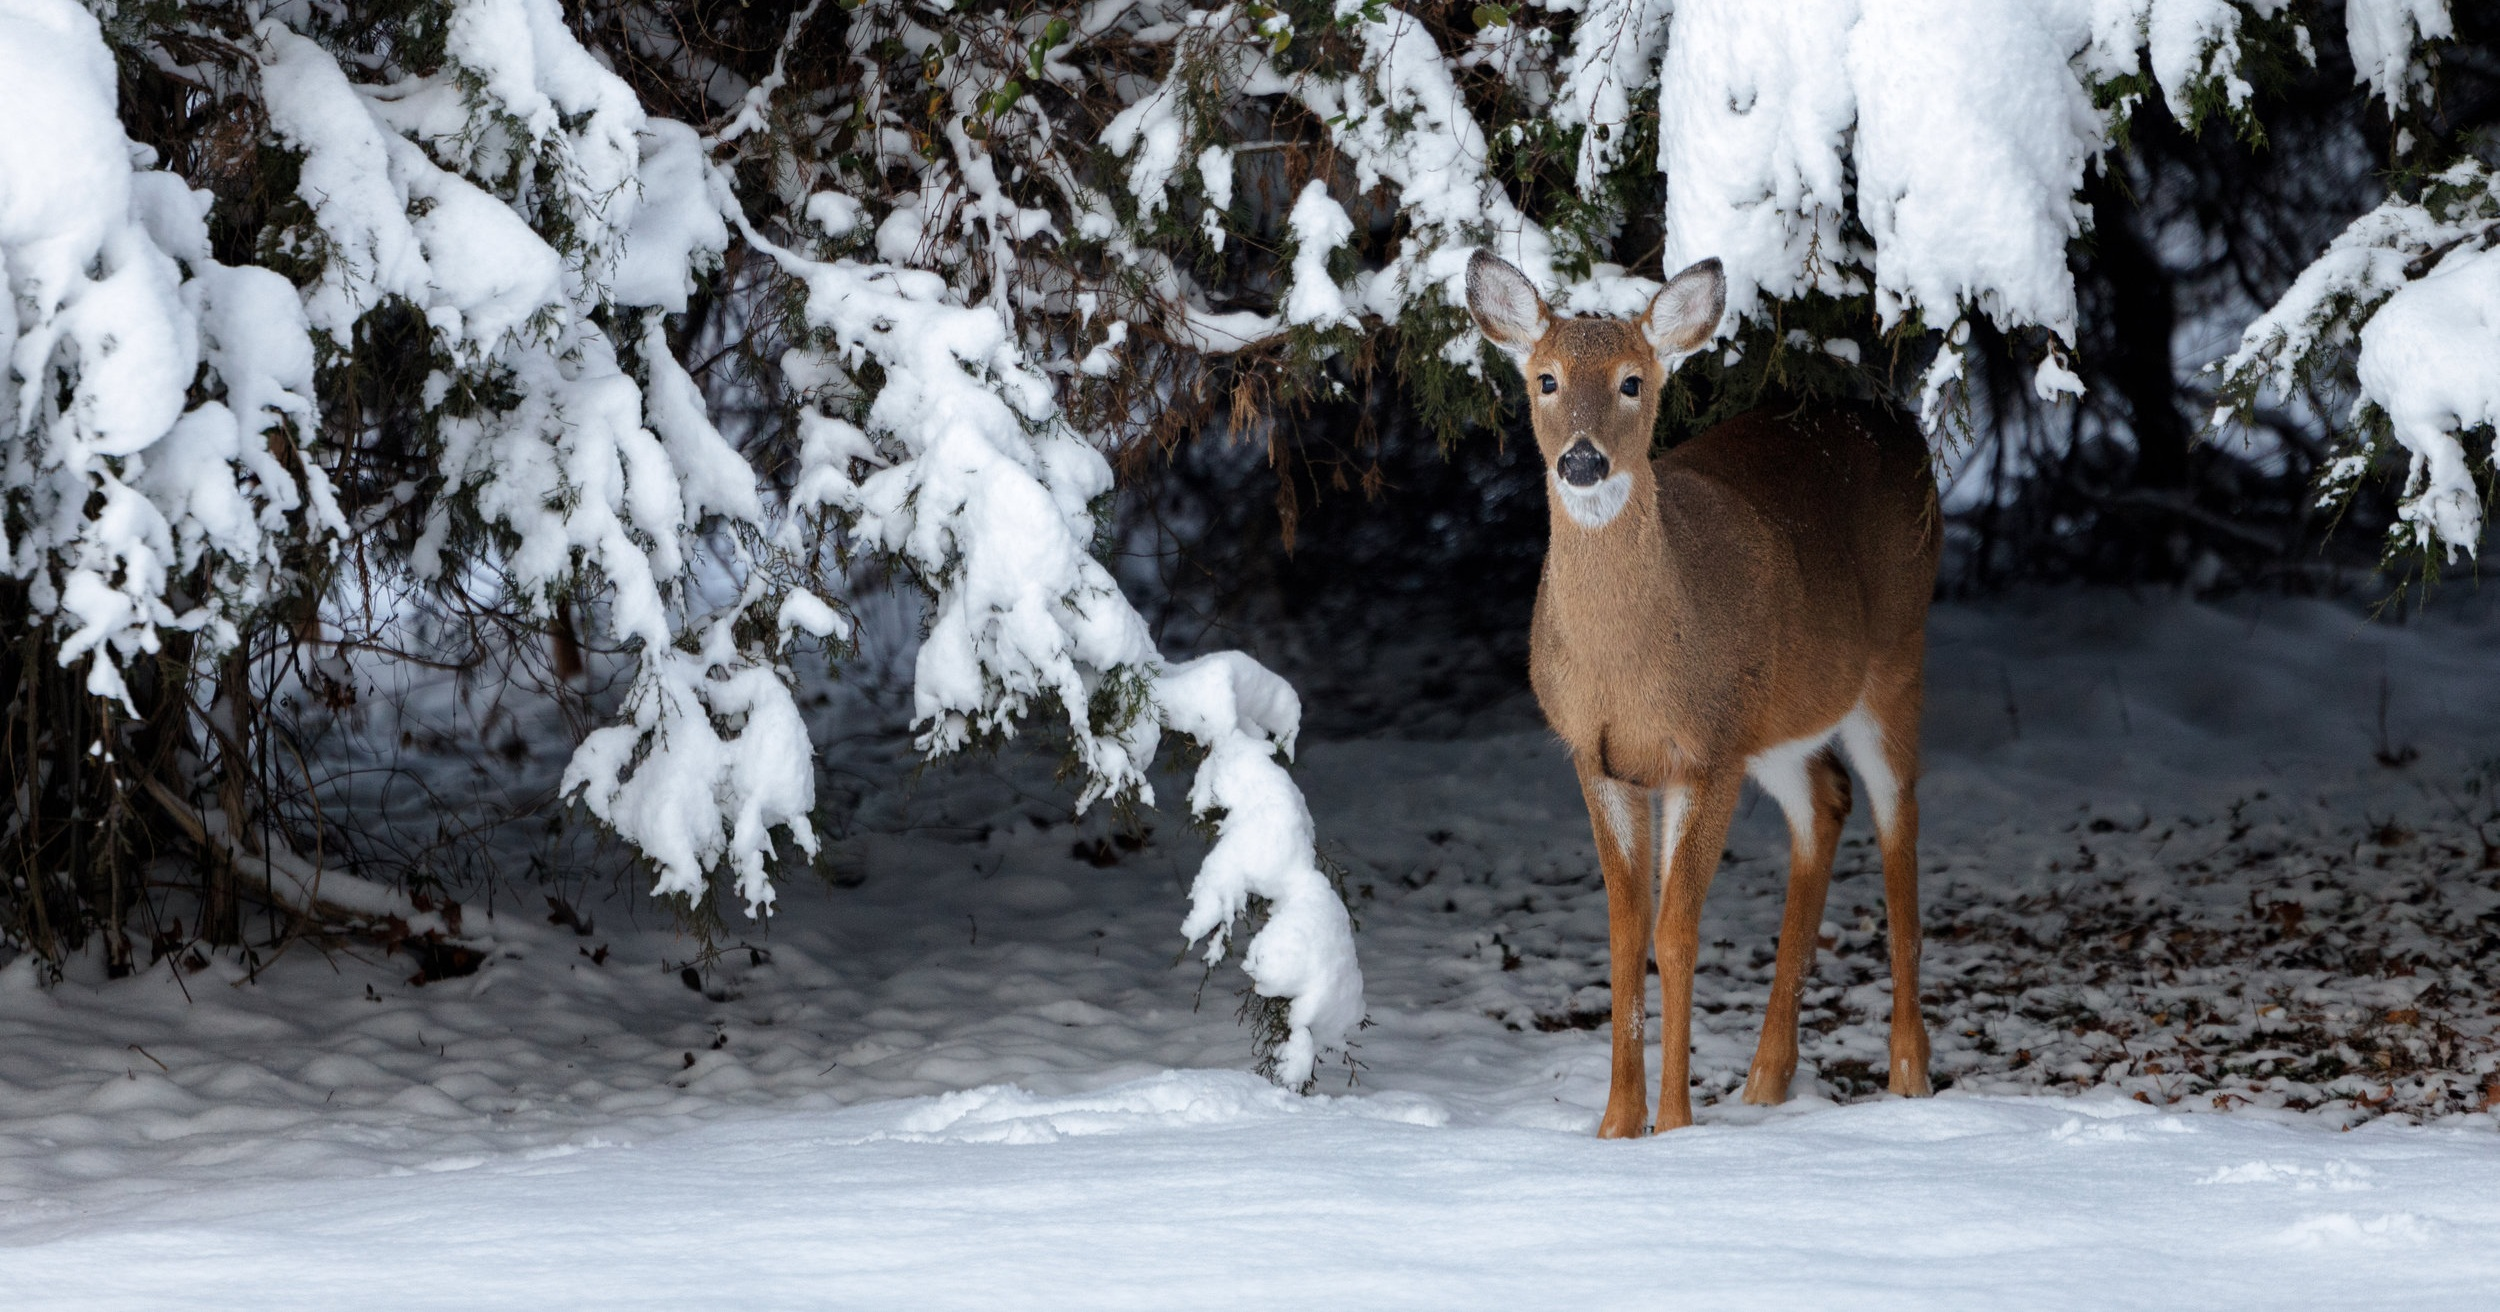 A white-tailed deer (odocoileus virginianus) stands under a snow covered evergreen in the winter in Virginia, USA.